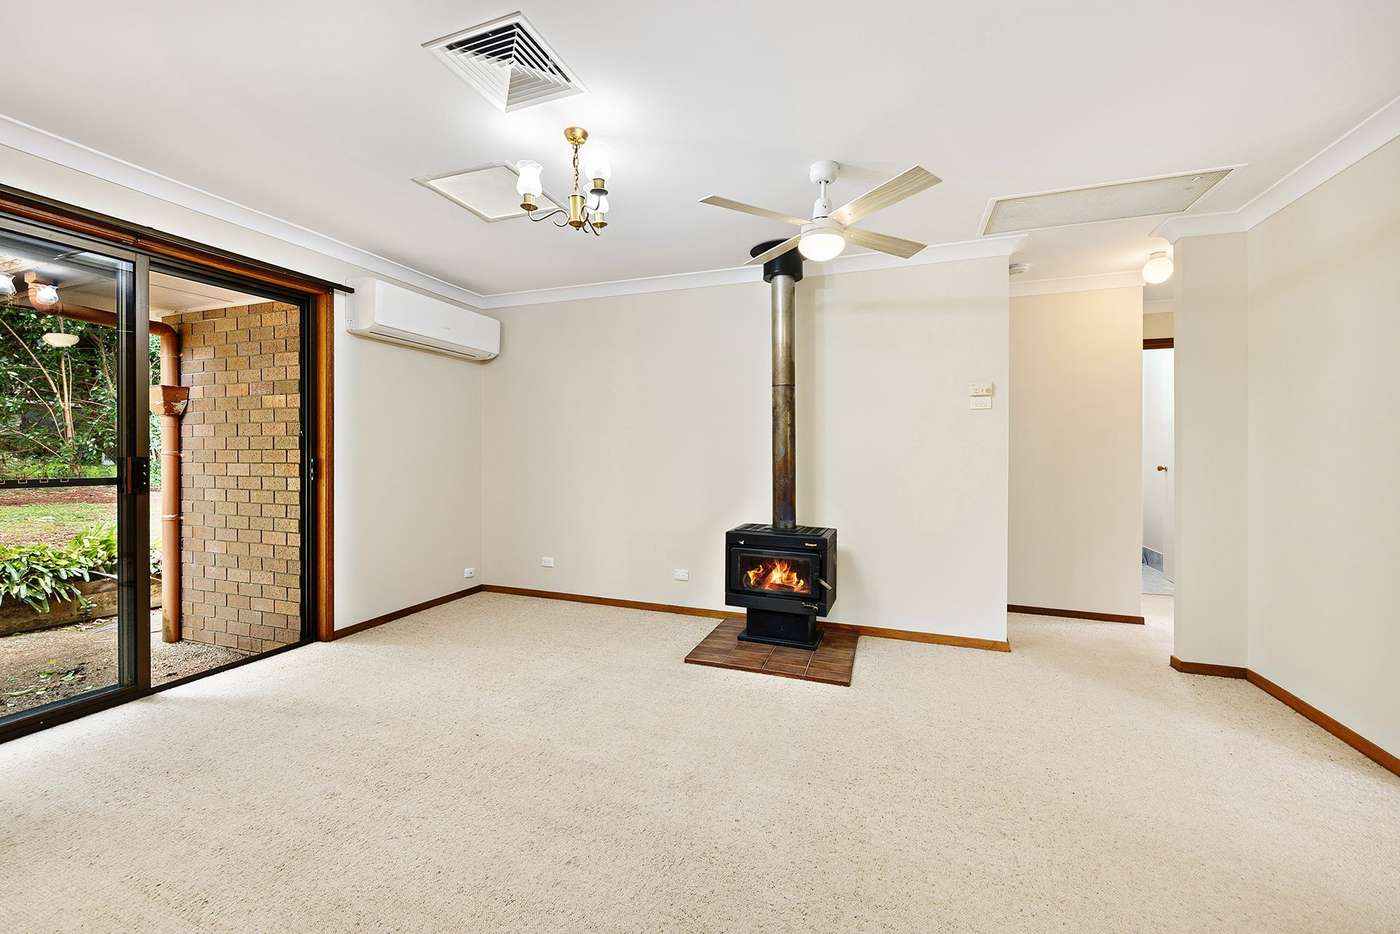 Sixth view of Homely house listing, 18-20 Arenga Drive, Tamborine Mountain QLD 4272